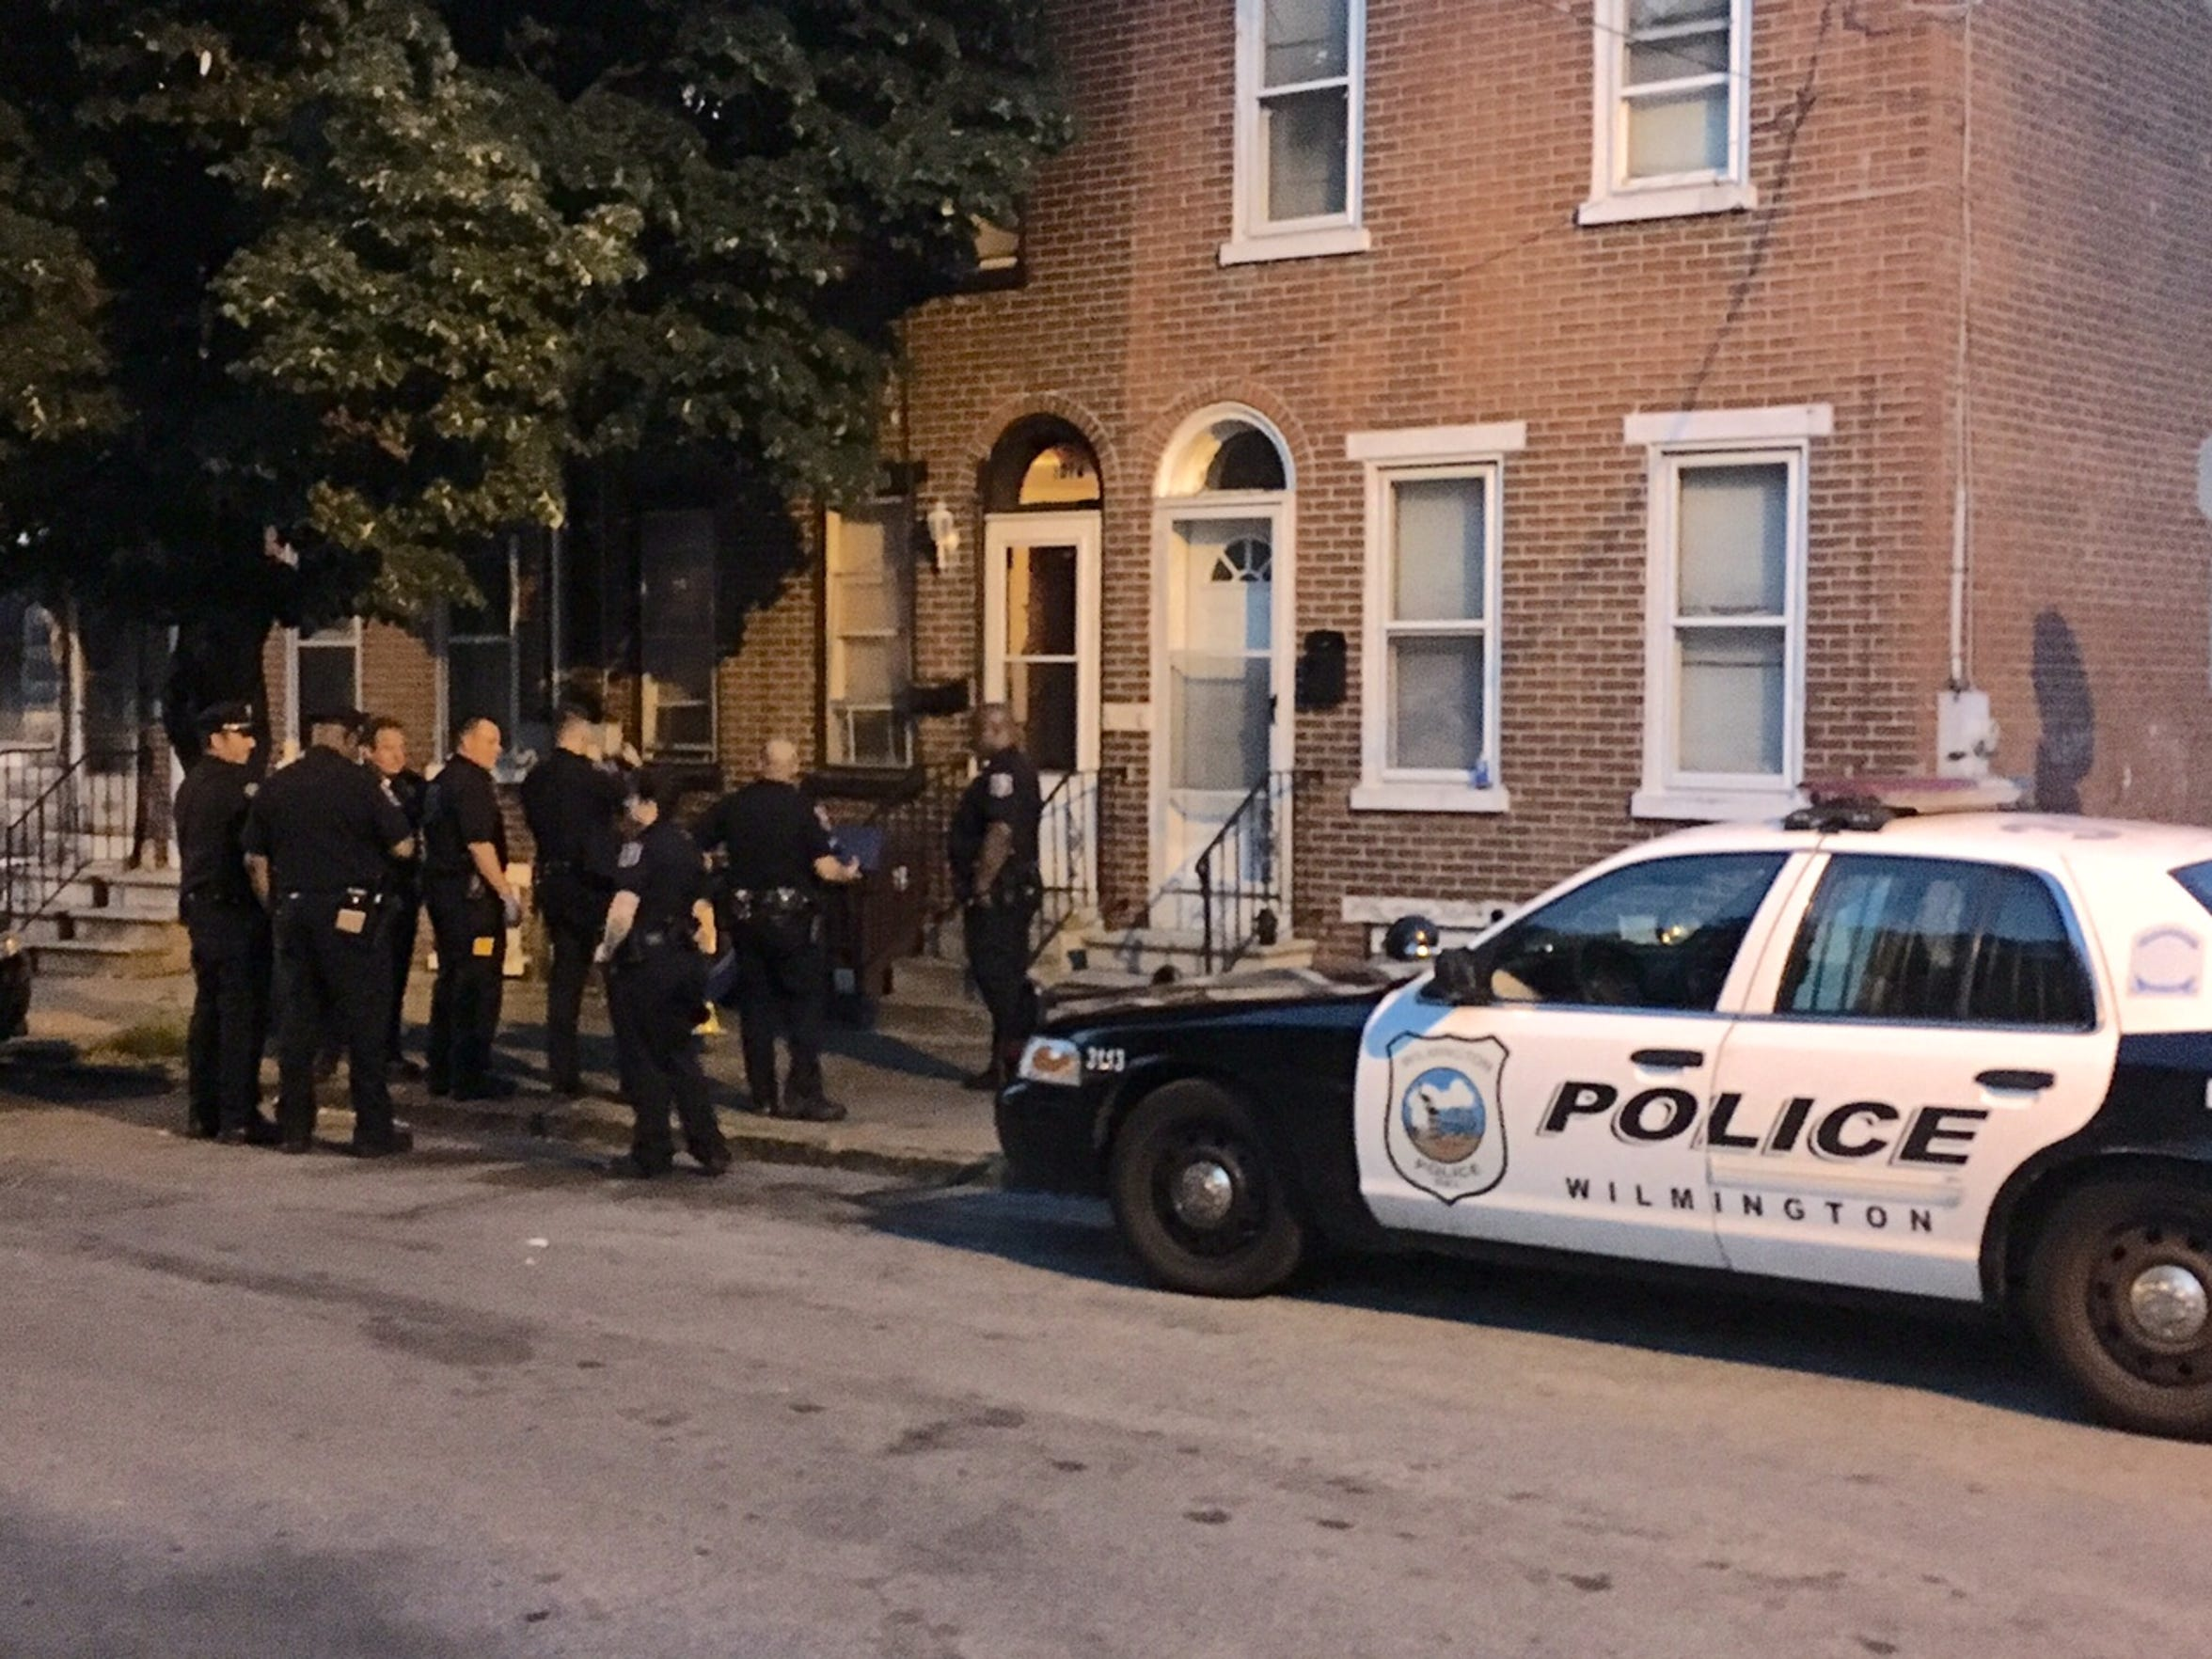 Police investigate the shooting of a 16-year-old boy in Wilmington.